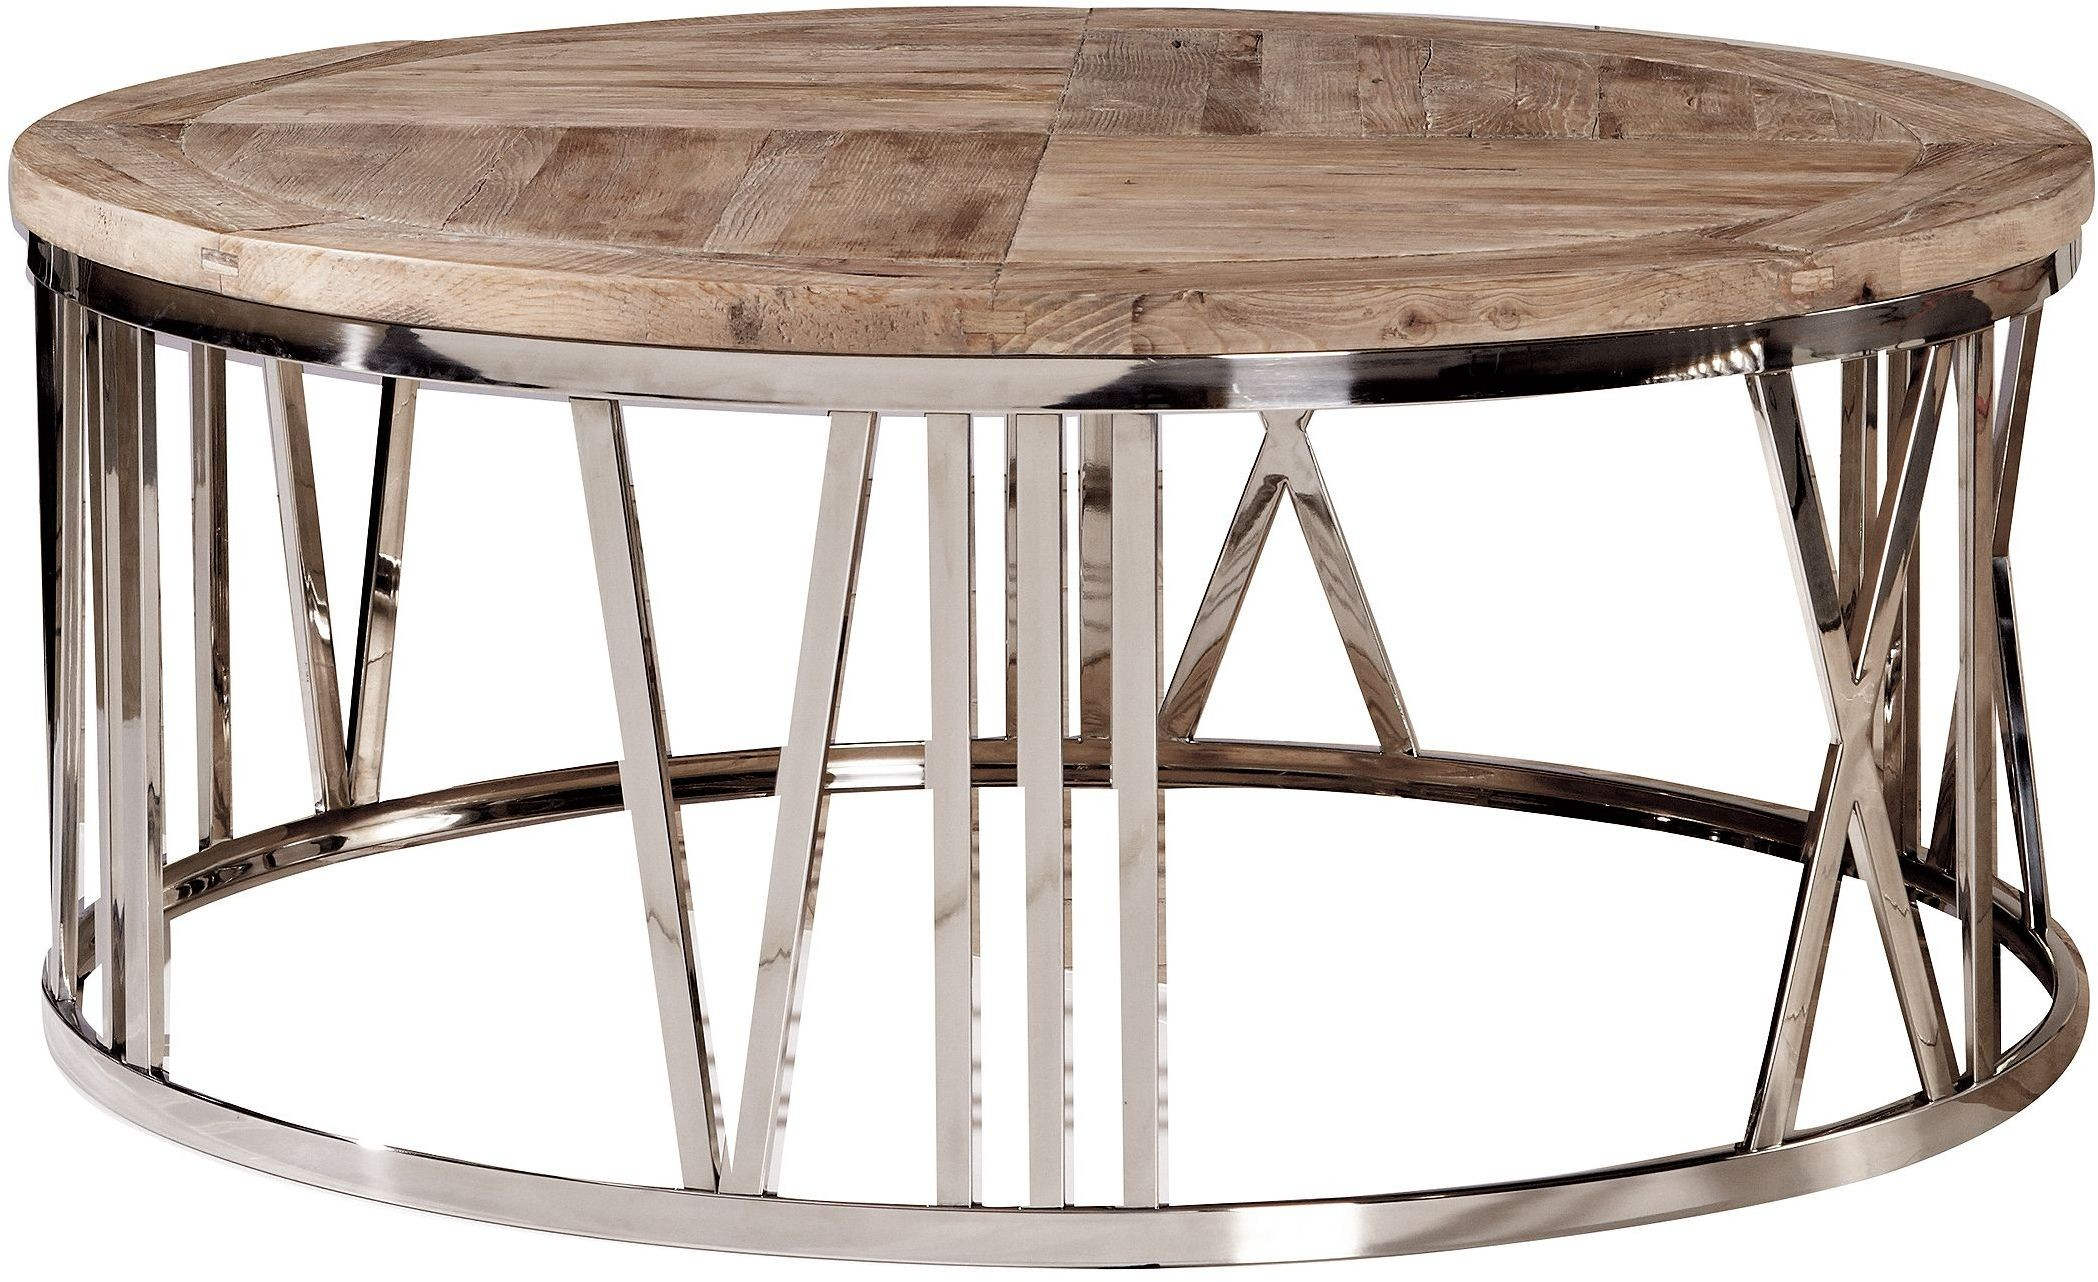 round stainless steel coffee table from furniture classics coleman furniture. Black Bedroom Furniture Sets. Home Design Ideas